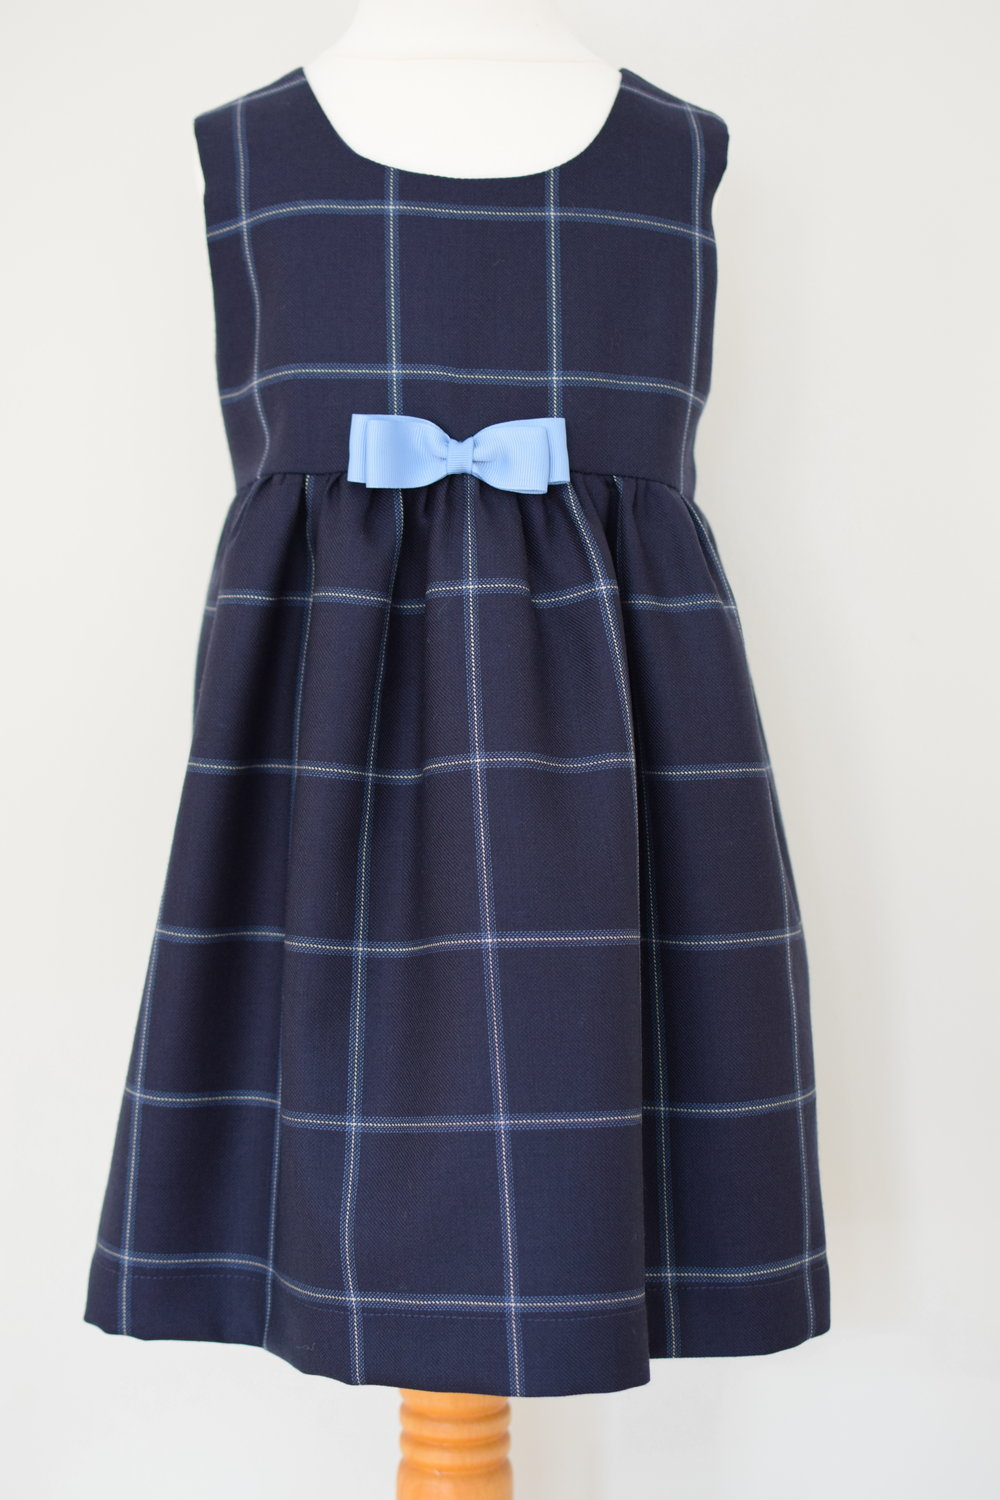 Blue check wool dress   Description: pinafore style dress made from beautifully fine English virgin wool with a gathered skirt and fixed grosgrain bow, concealed zip at back and fully lined.  Sizes: 3y and 5y  Price: from £38